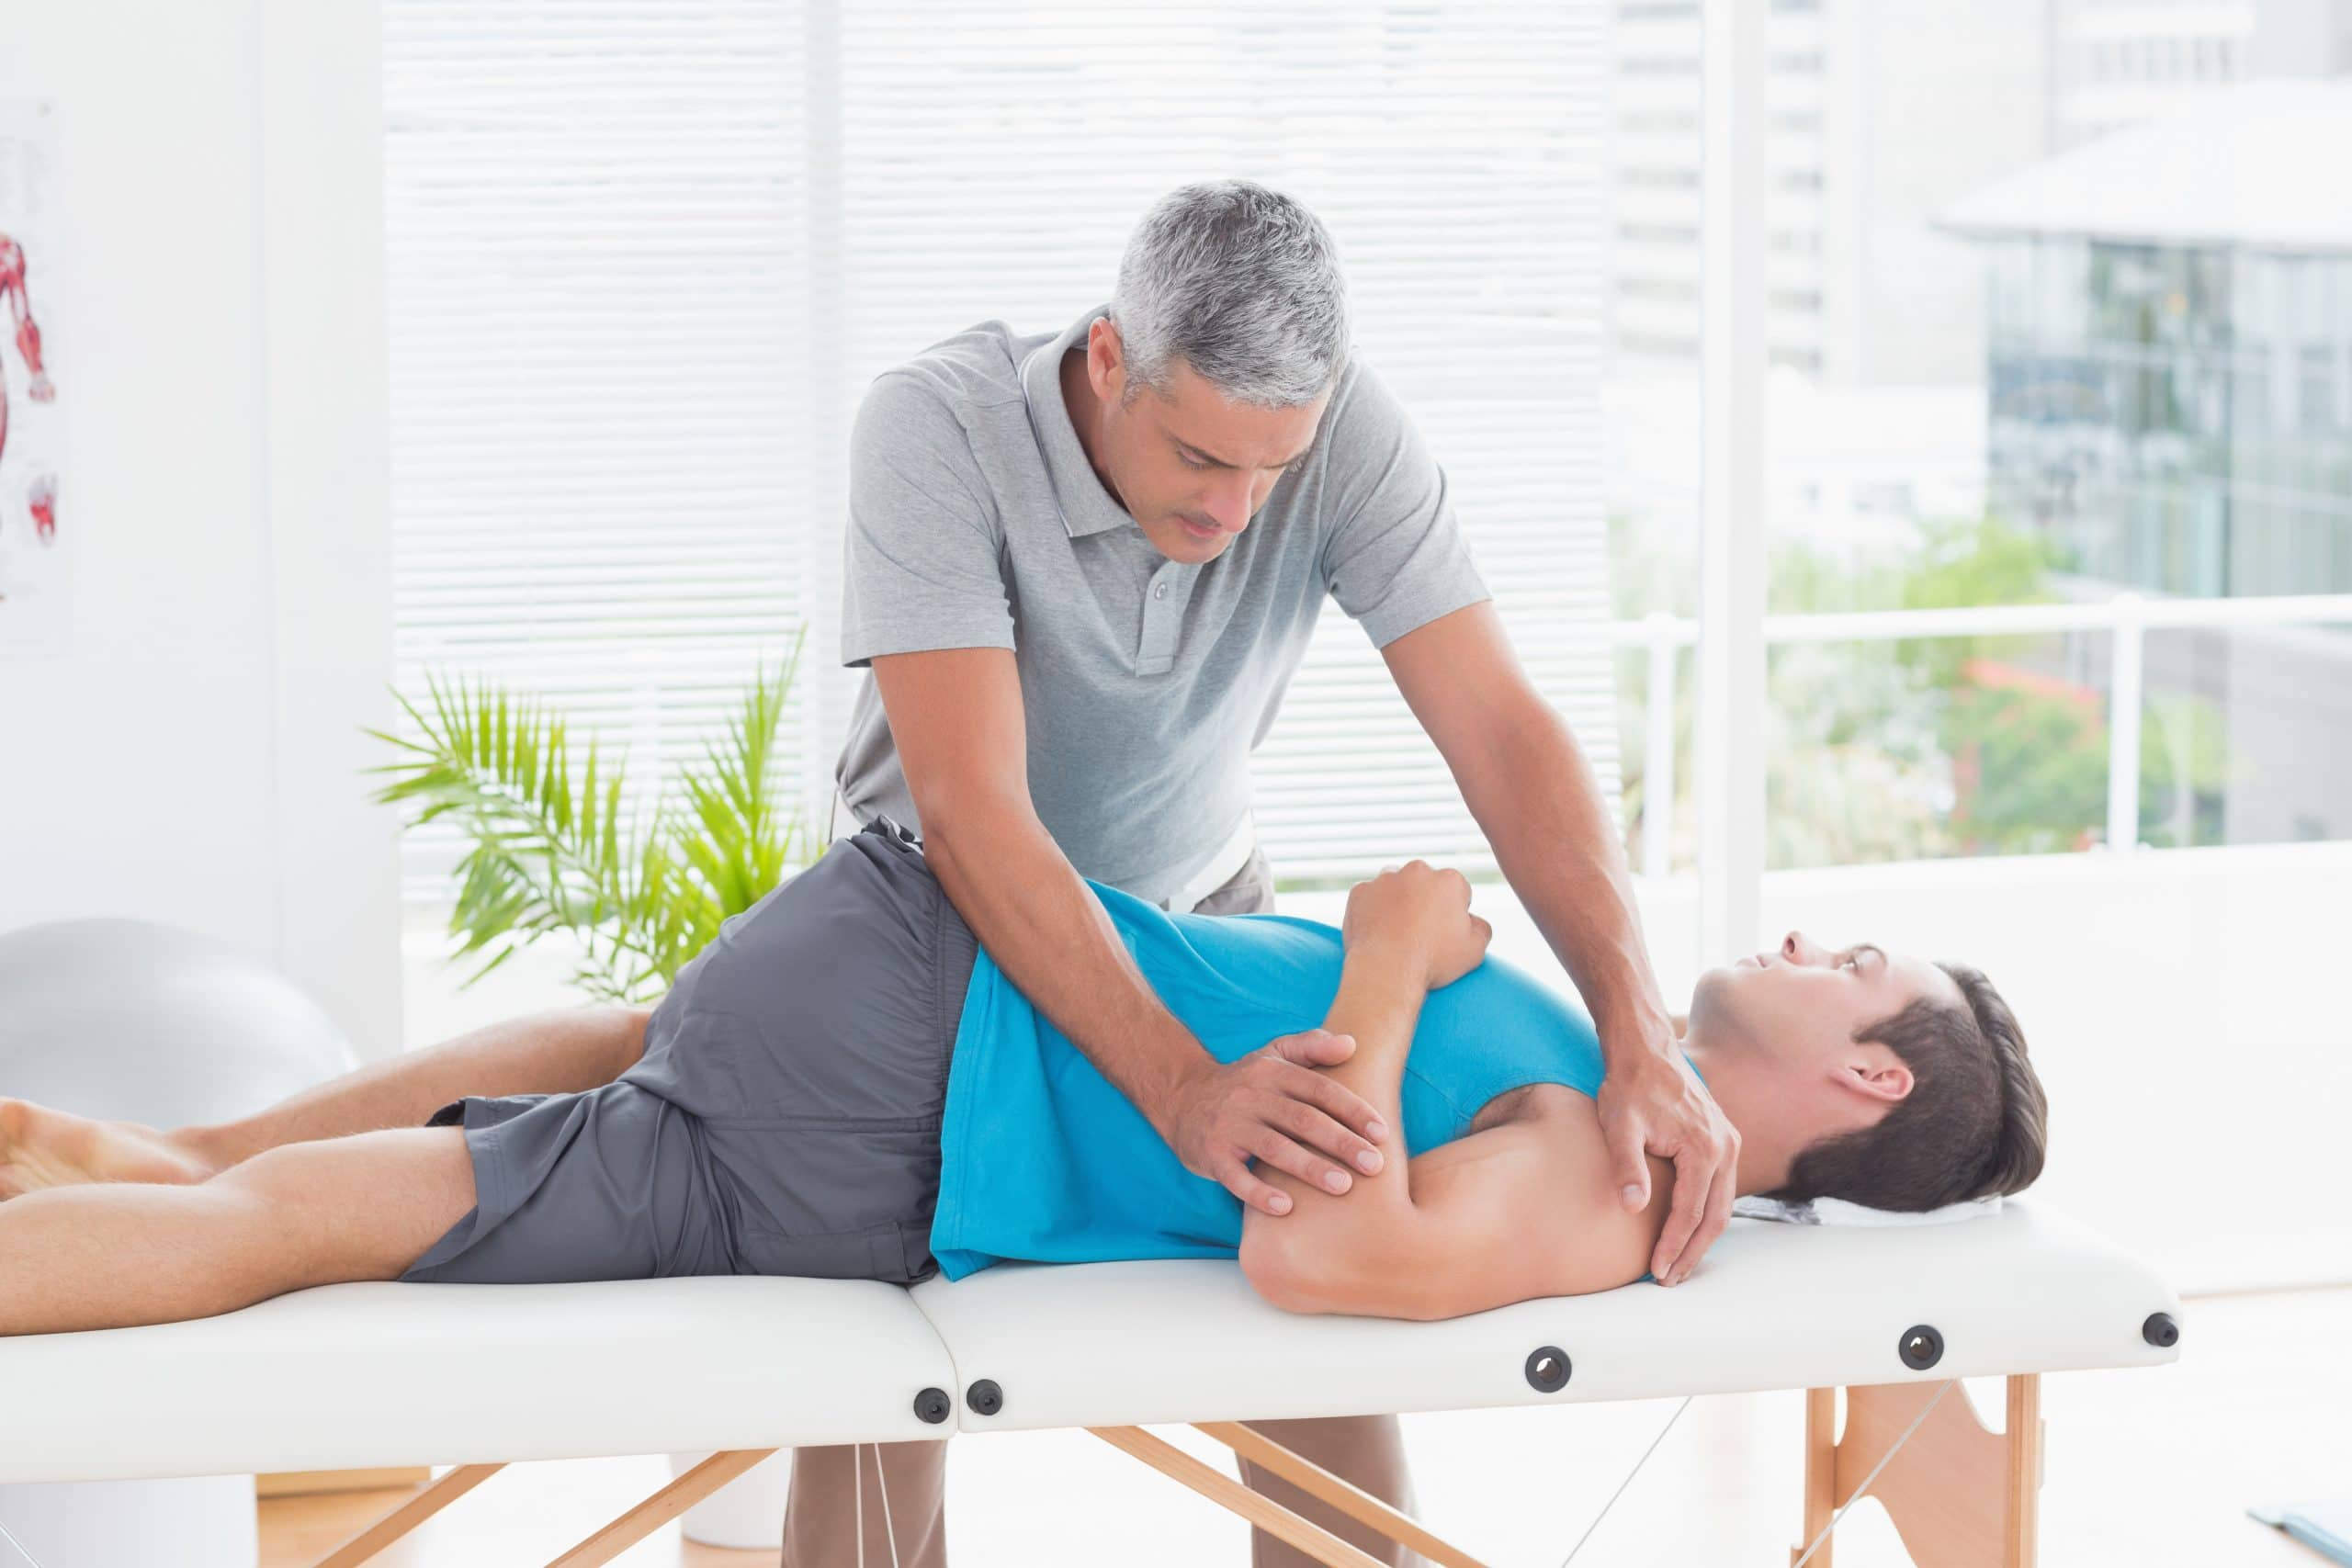 HOW TO GET THE MAXIMUM BENEFIT OUT OF YOUR REHABILITATION